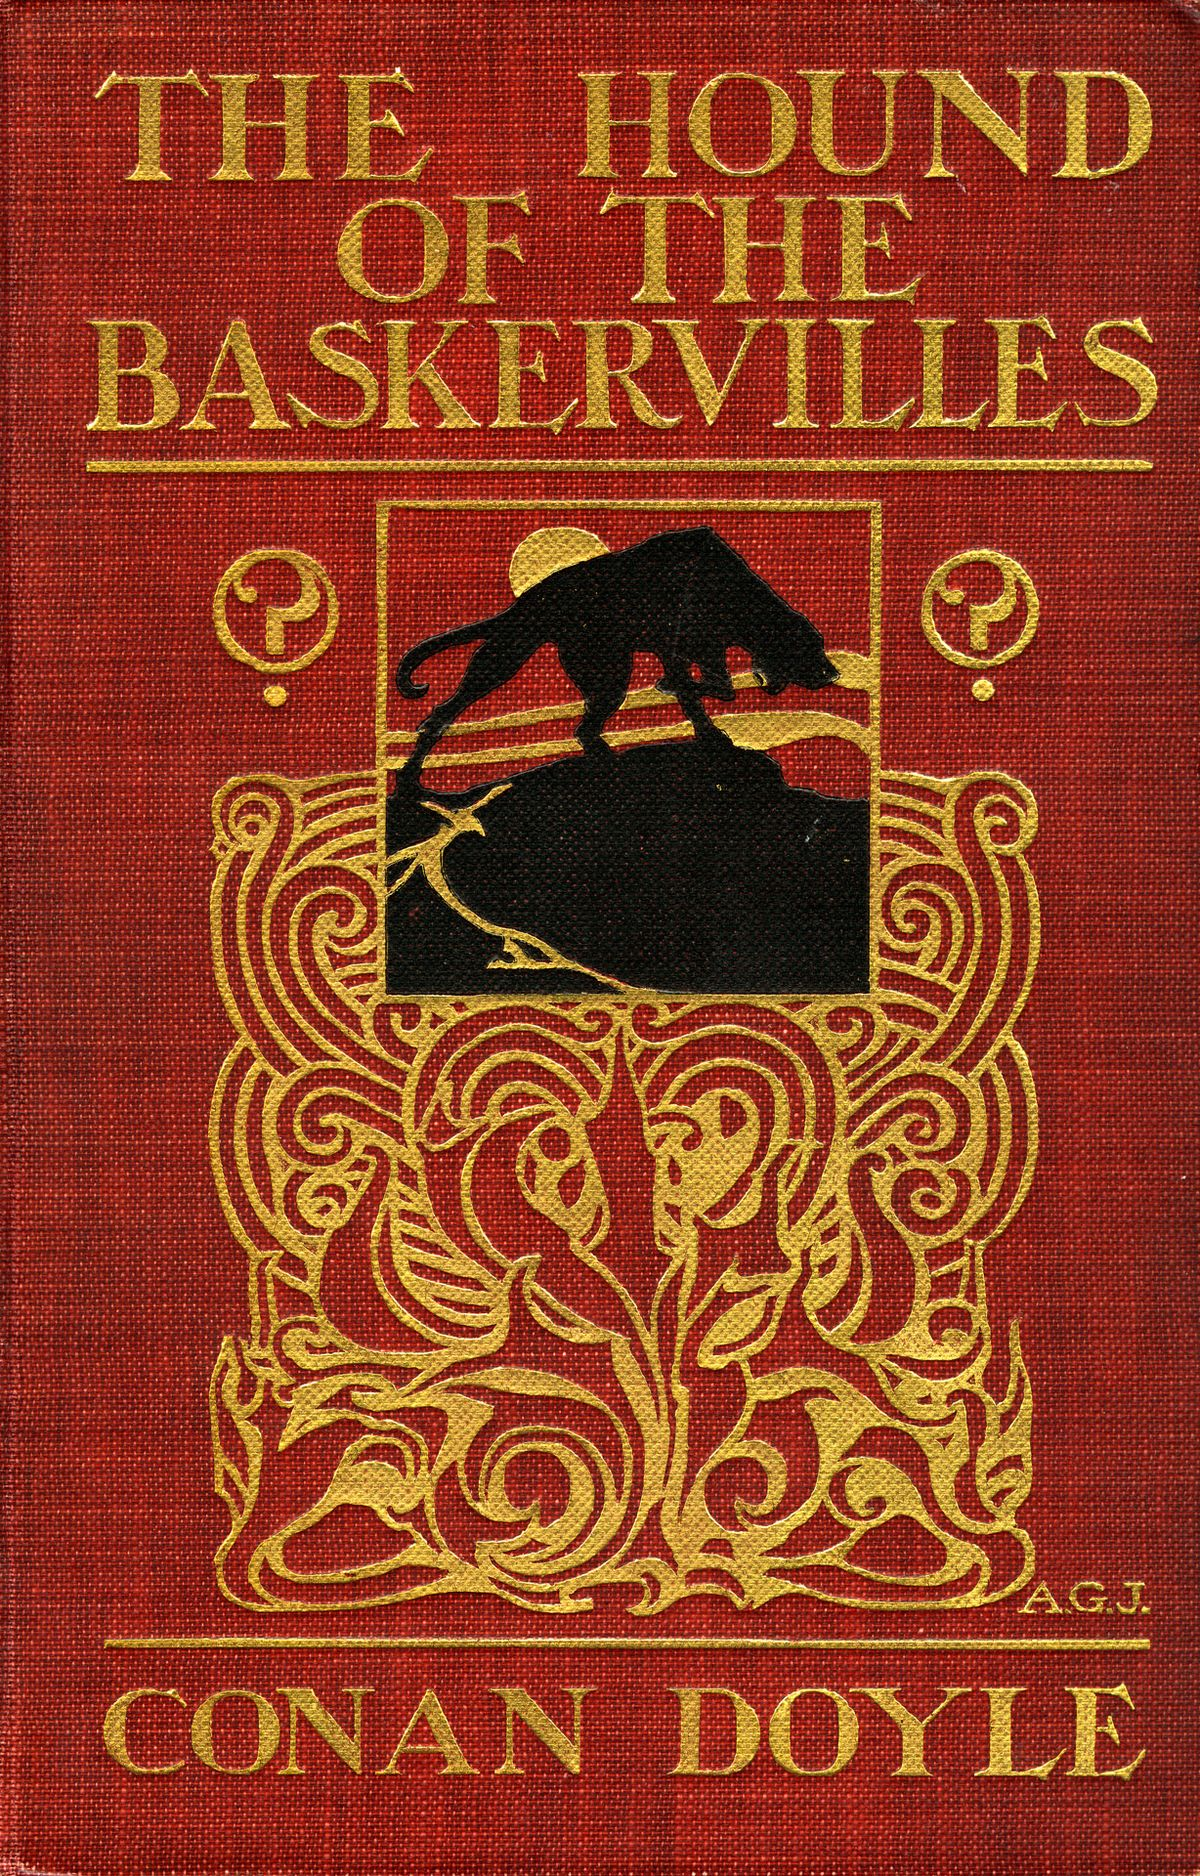 the hound of the baskervilles holmes Download sherlock holmes and the hound of the baskervilles today, or play this and 2400+ other top games online for free at gamehouse.